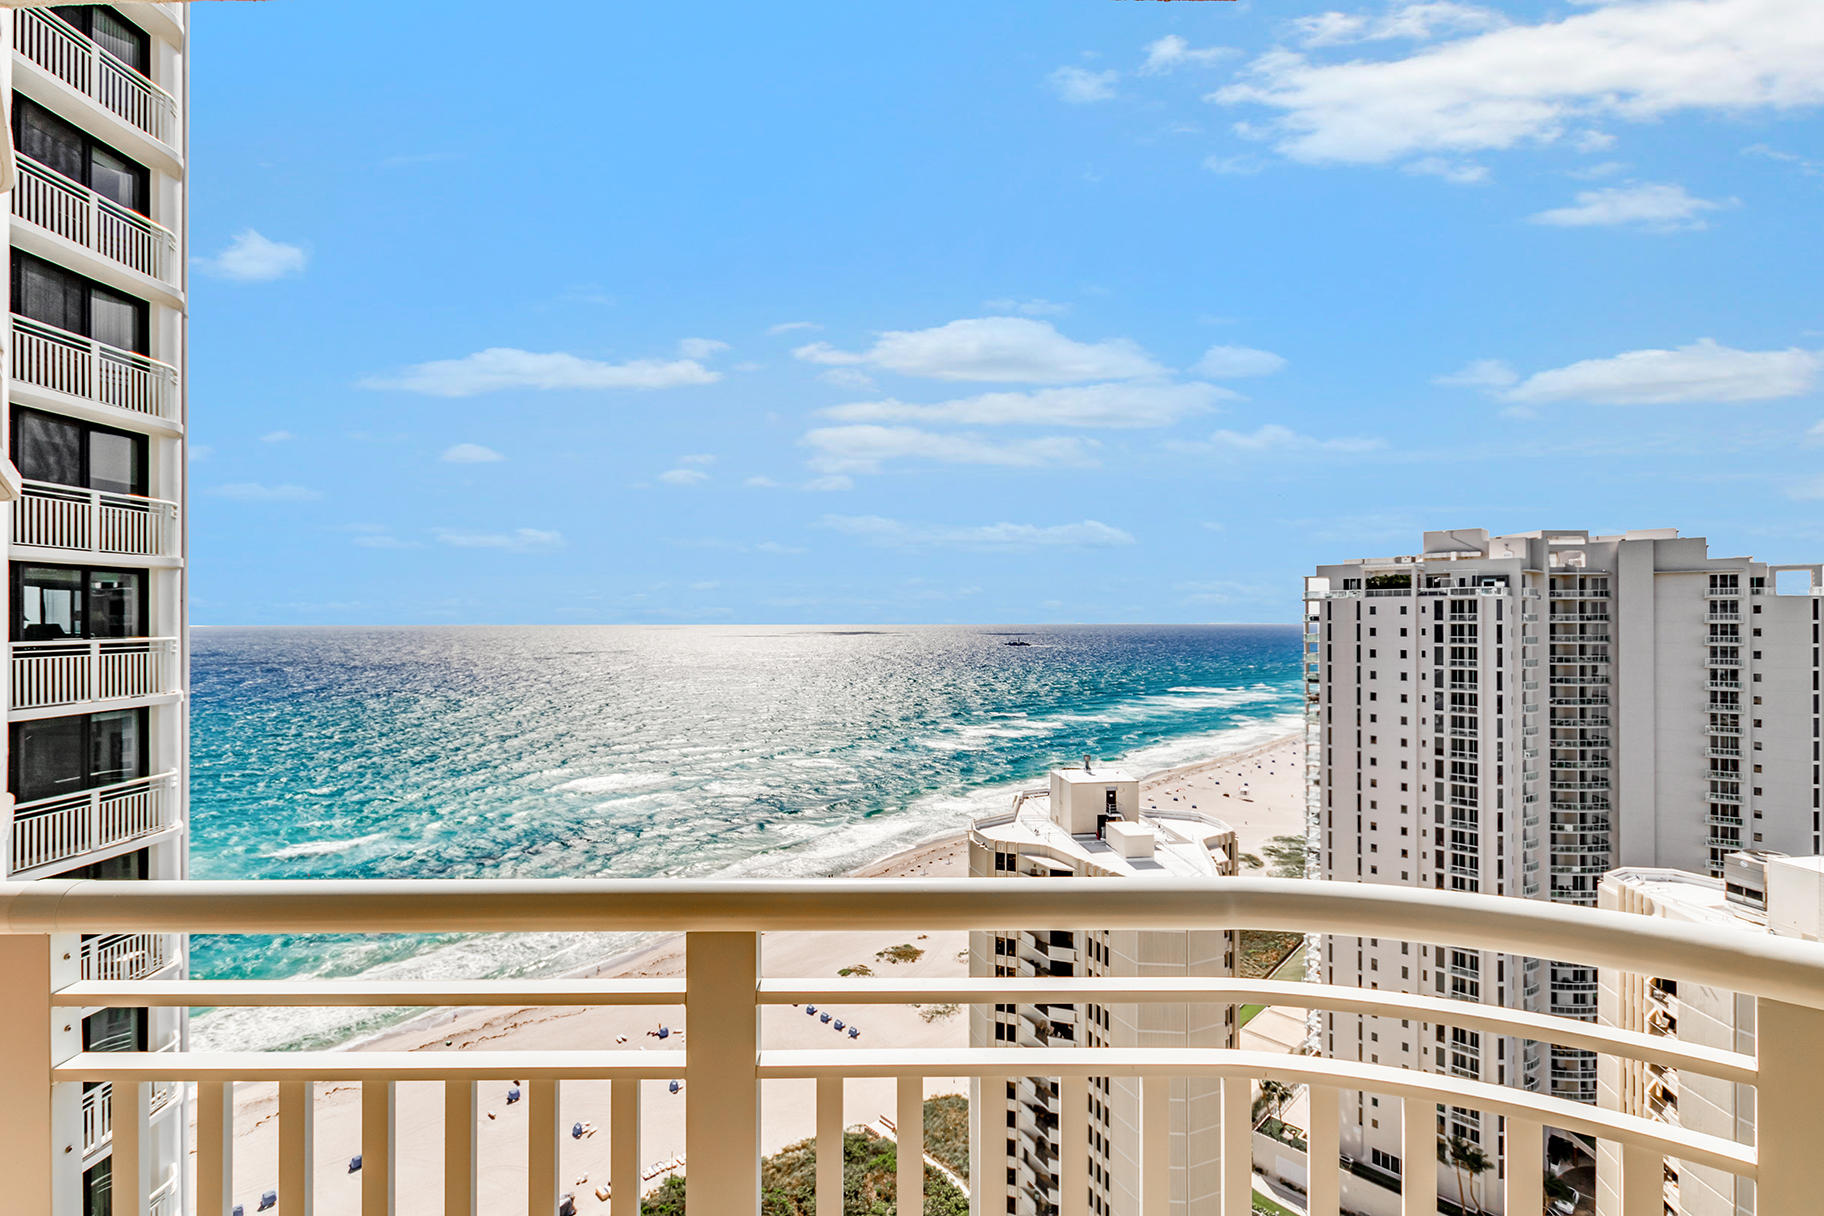 ''This two-bedroom corner condo, is not only one of the most beautifully & newly furnished Tiara condominiums, but has spectacular and vast views of the ocean, beach area, and the Intracoastal.  Floor to ceiling windows, which provide the continuous oceanfront view along the bedrooms and living room create the feeling of desired openness and spaciousness throughout the condo.  Please note that in the evening the Intracoastal view incorporates lighting that presents a magical view of the Singer Island Bridge and the wonderful boating waterway known as Sailfish.  Amazing Amenities: 2 restaurants, Men's and Women's Fitness Centers,  Swimming Pool Billiards Room, Saunas, Walk to Restaurants, Post Office, Banks, Stories.  See Documents regarding Furniture Furnishings